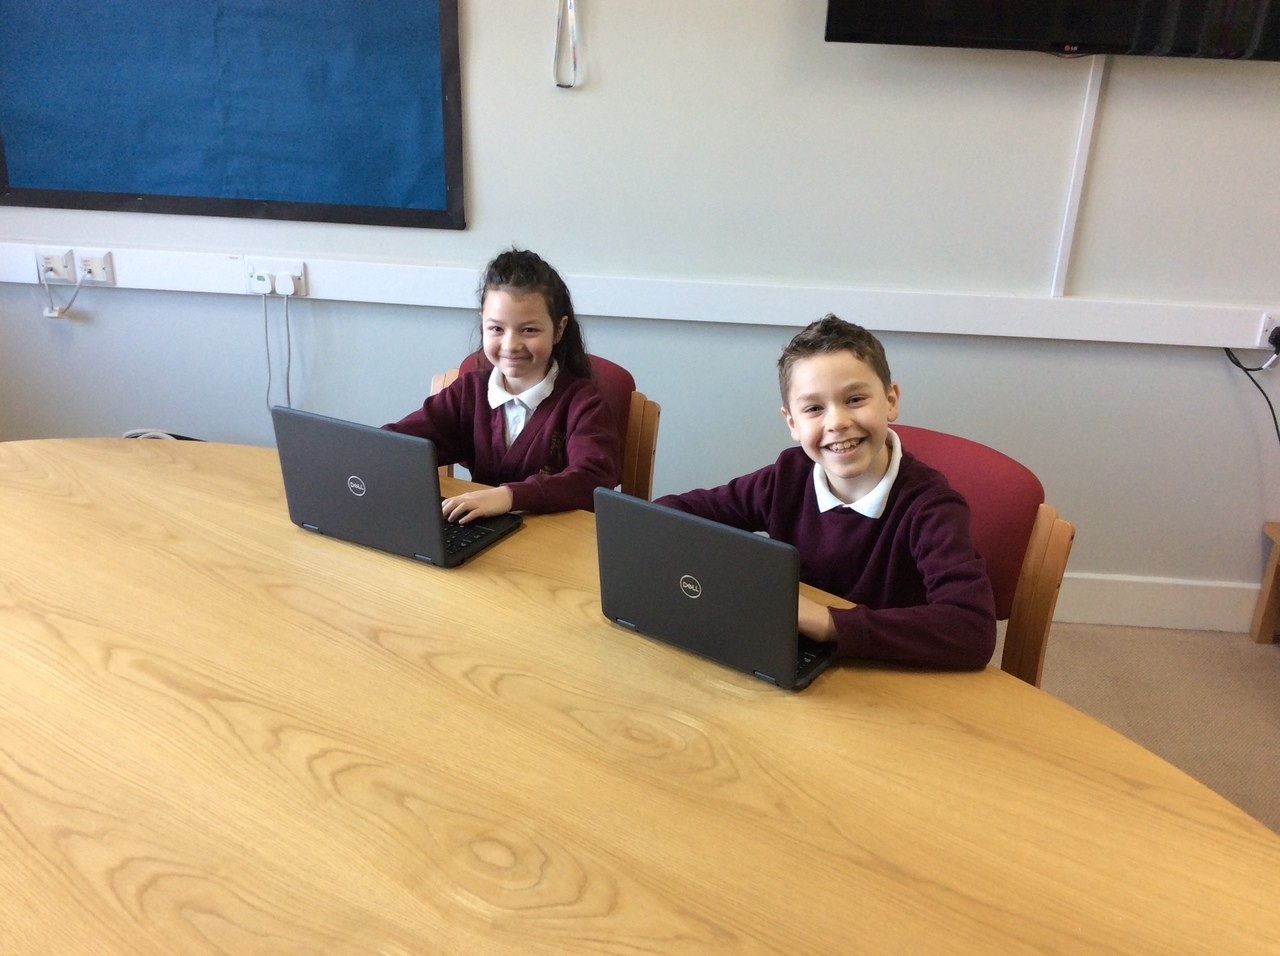 Local school gets boost with new laptops | Asda Kingswood